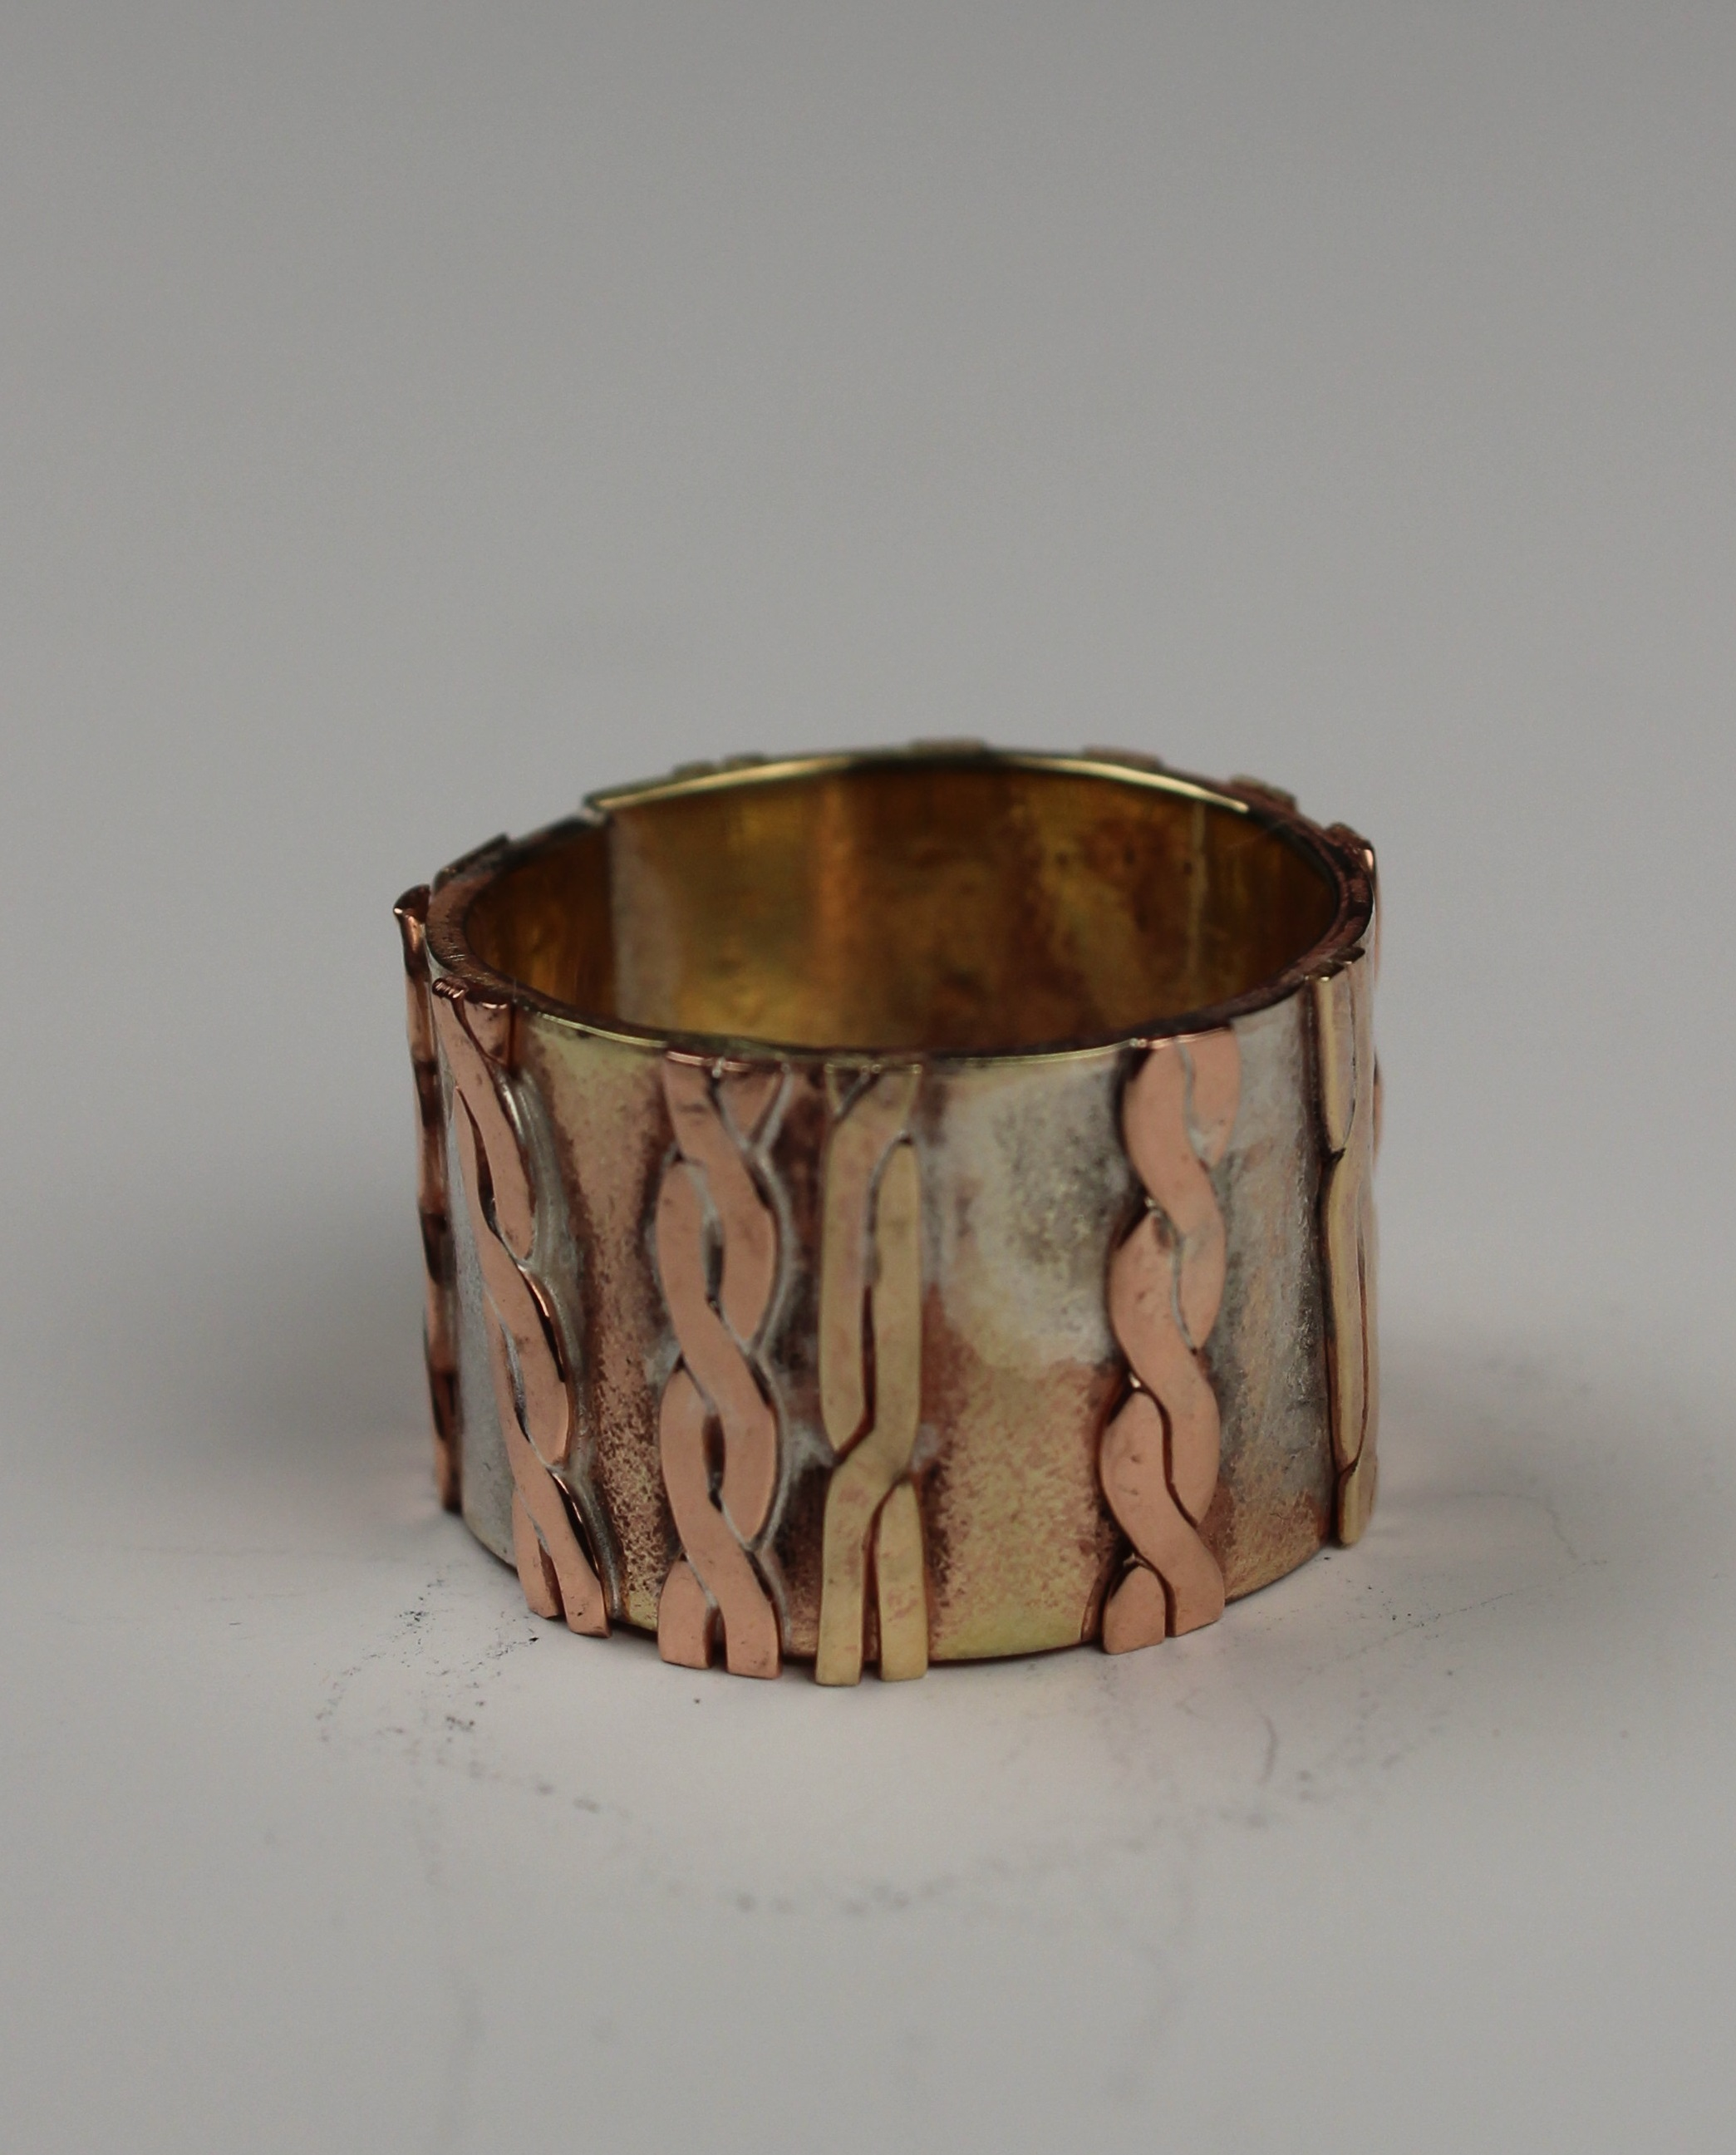 Twisted Patterned Ring